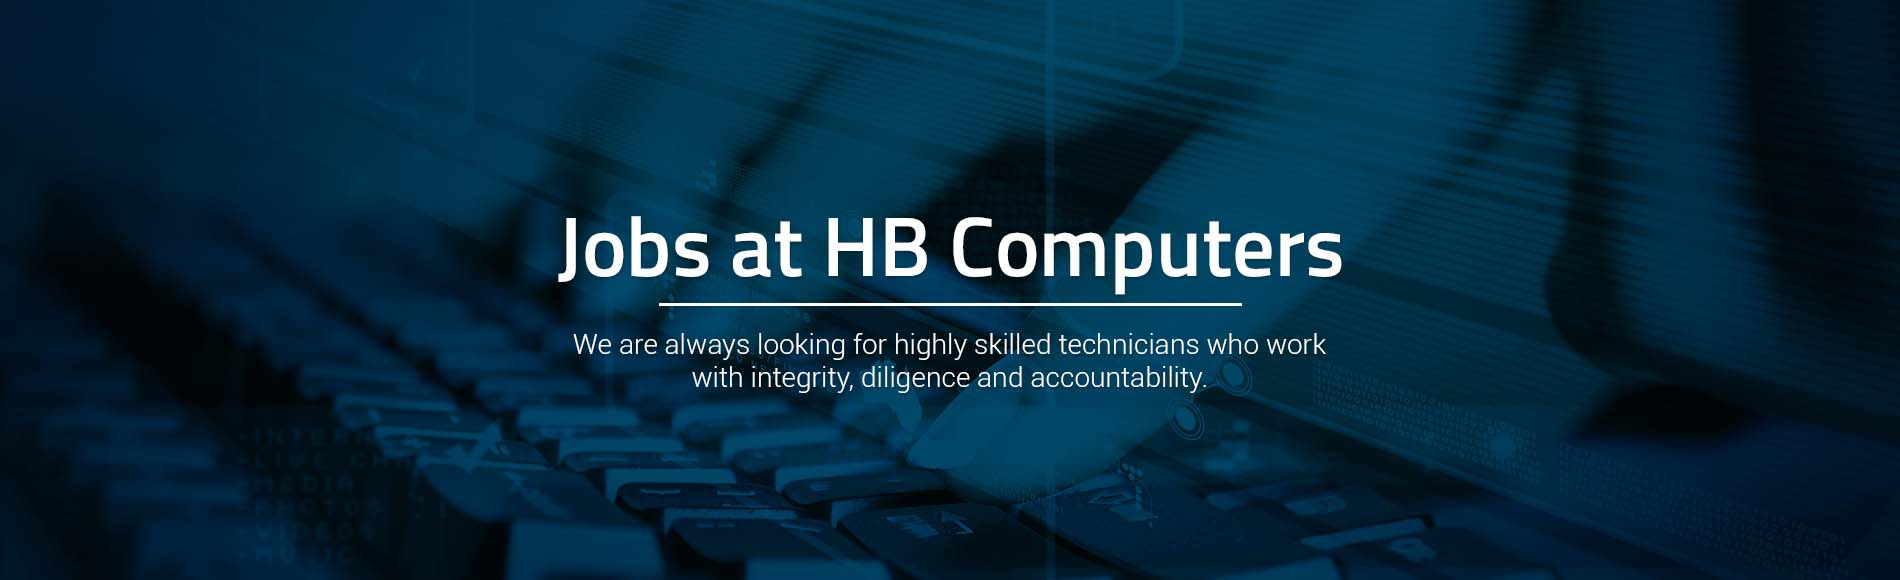 Jobs at HB Computers